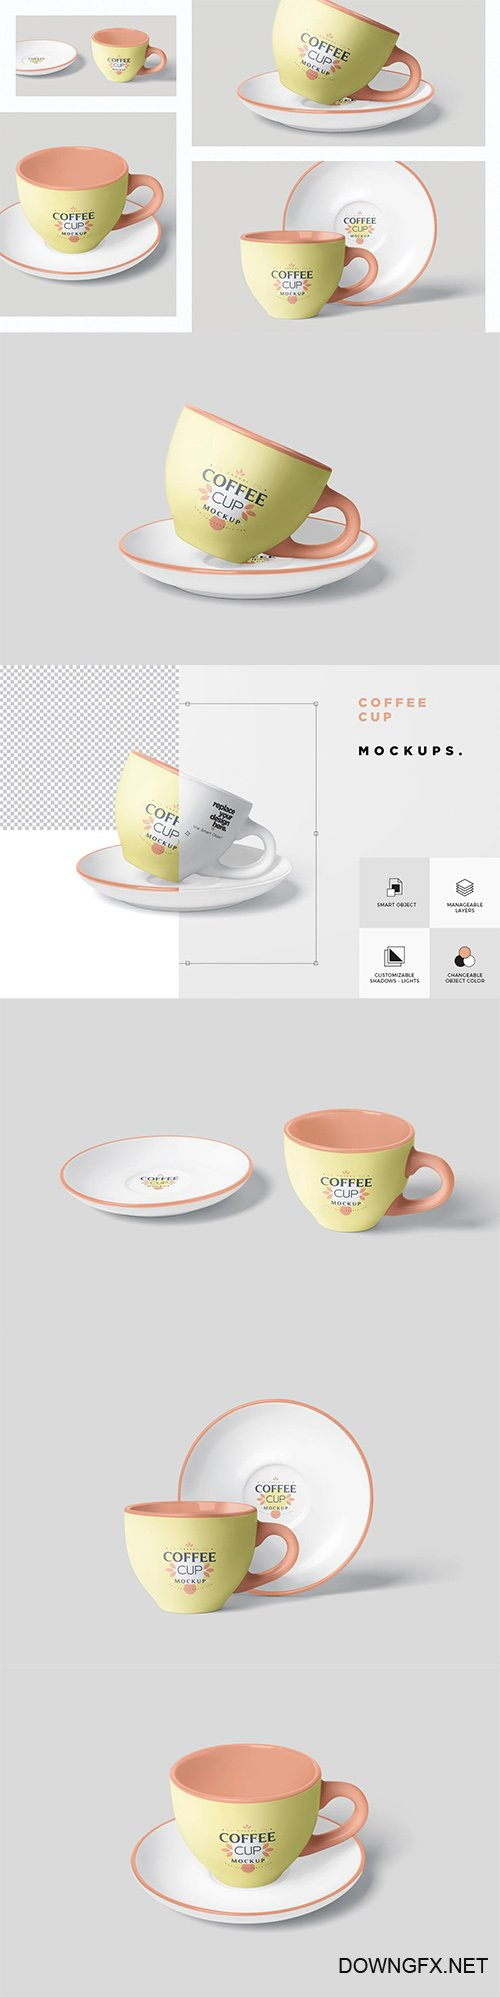 Coffee Cup Mockup Set with Saucer PSD